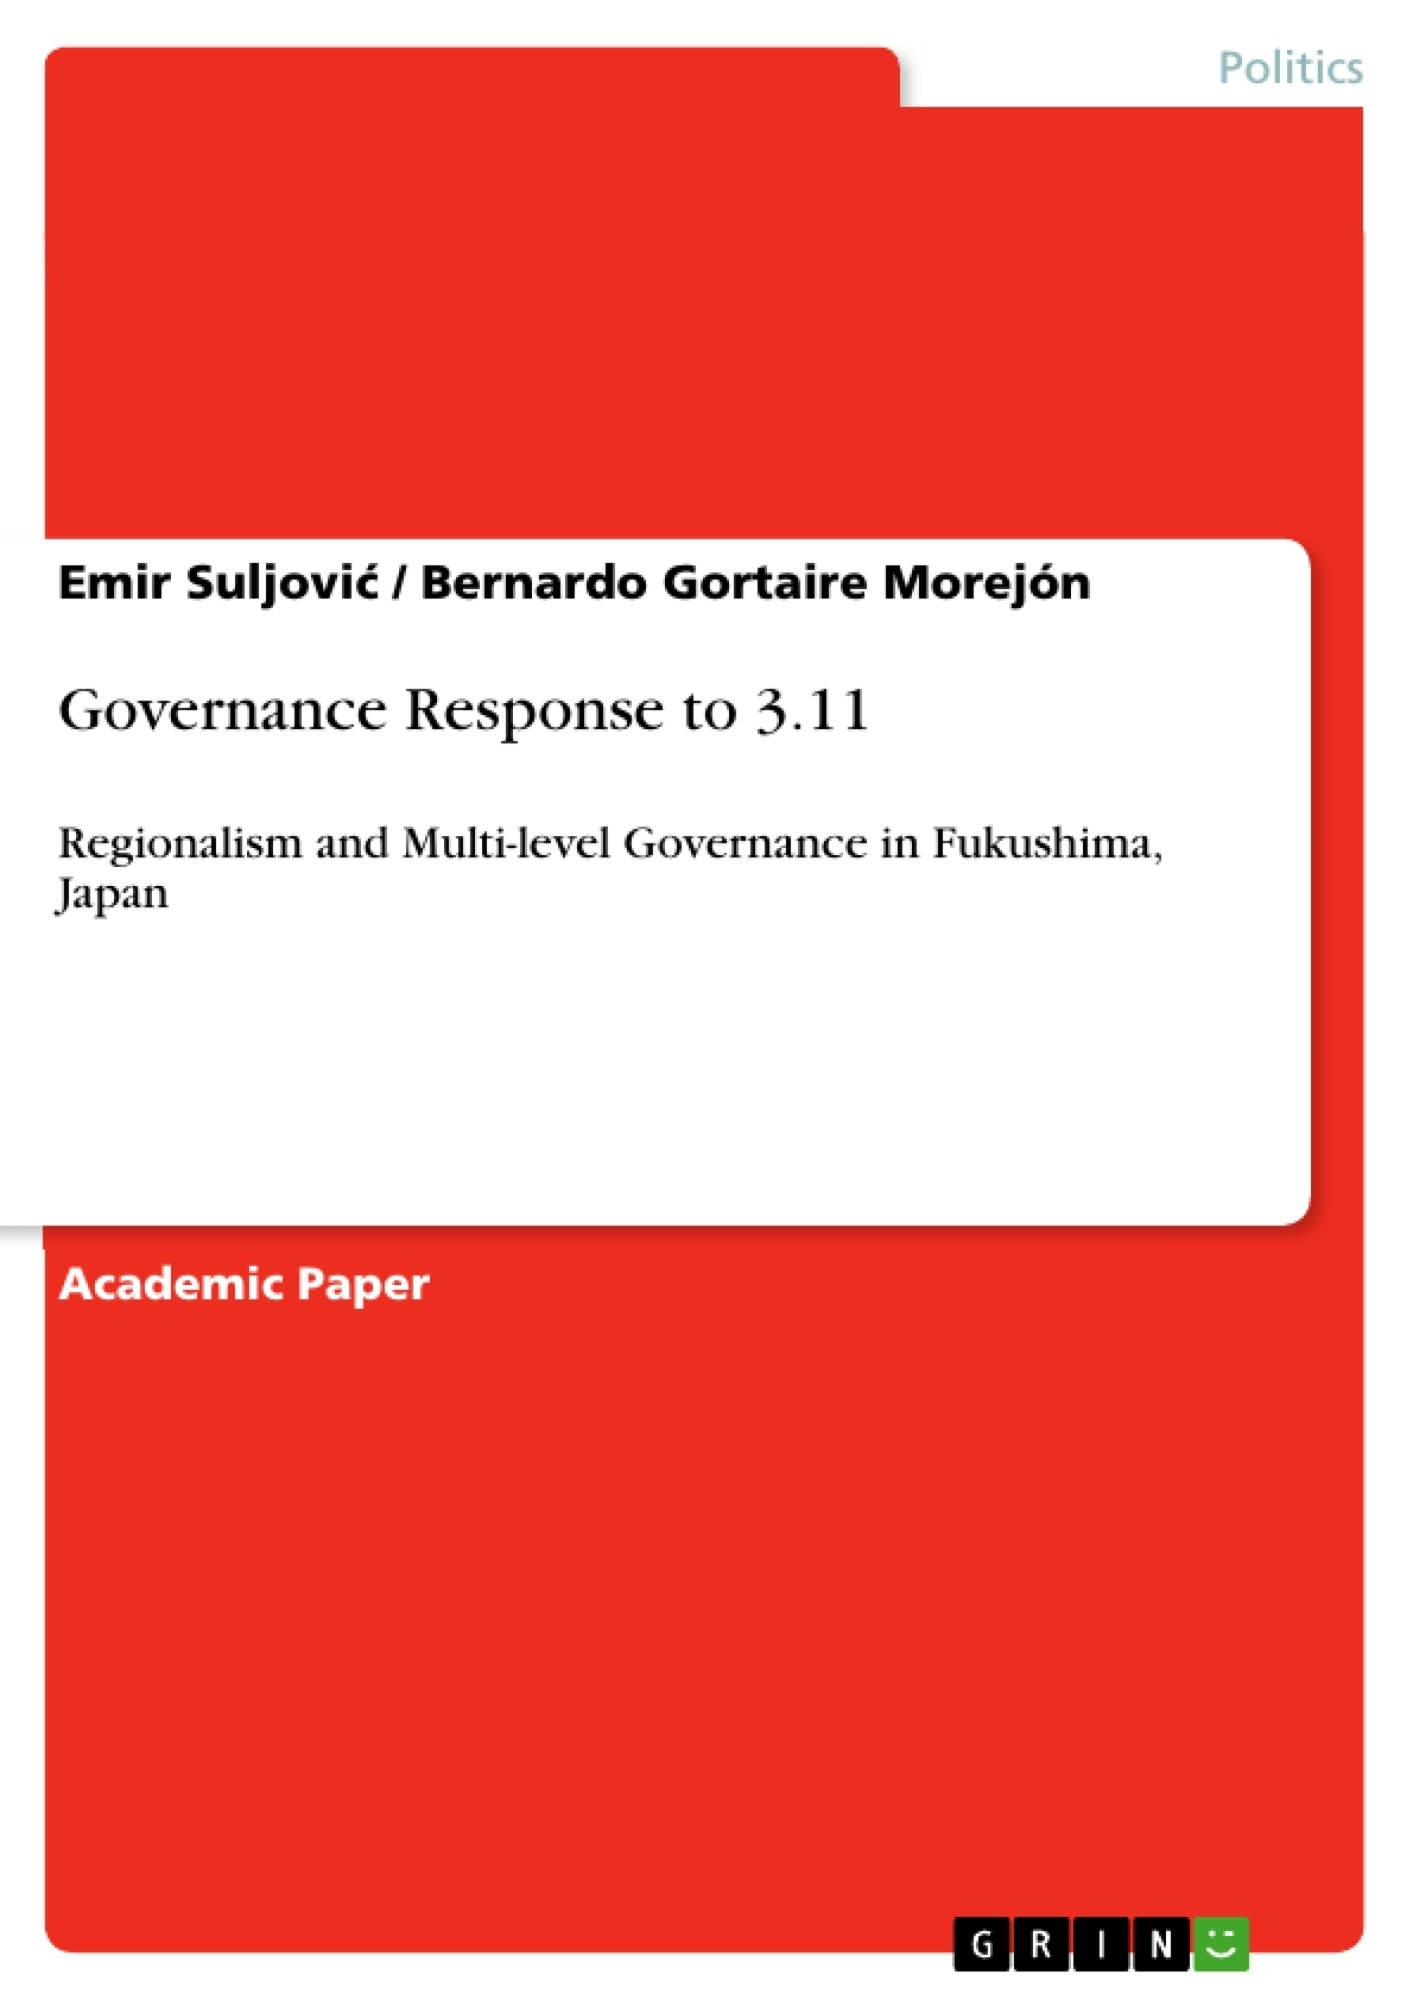 Title: Governance Response to 3.11